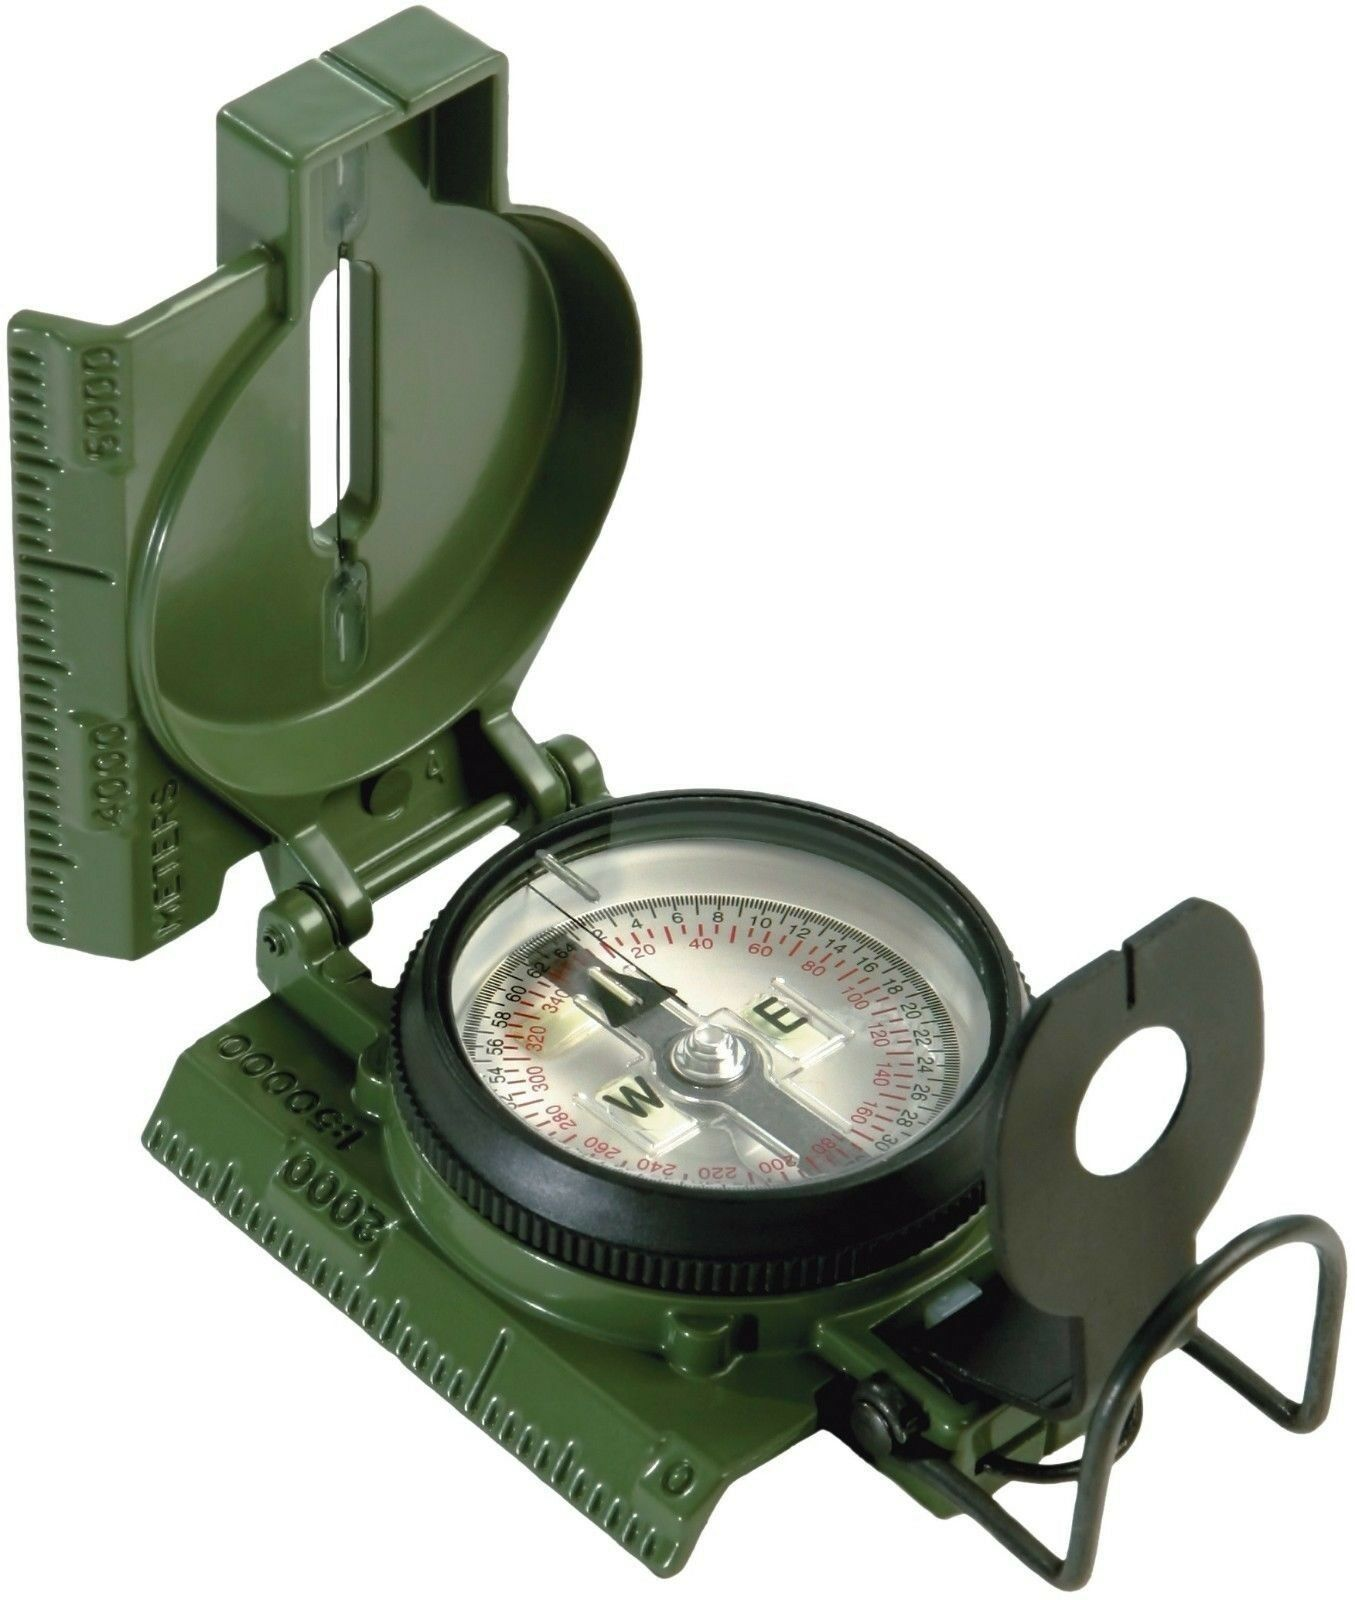 Official U.S. Military Tritium  Lensatic Compass G.I. Battle Compasses w  Pouch  40% off